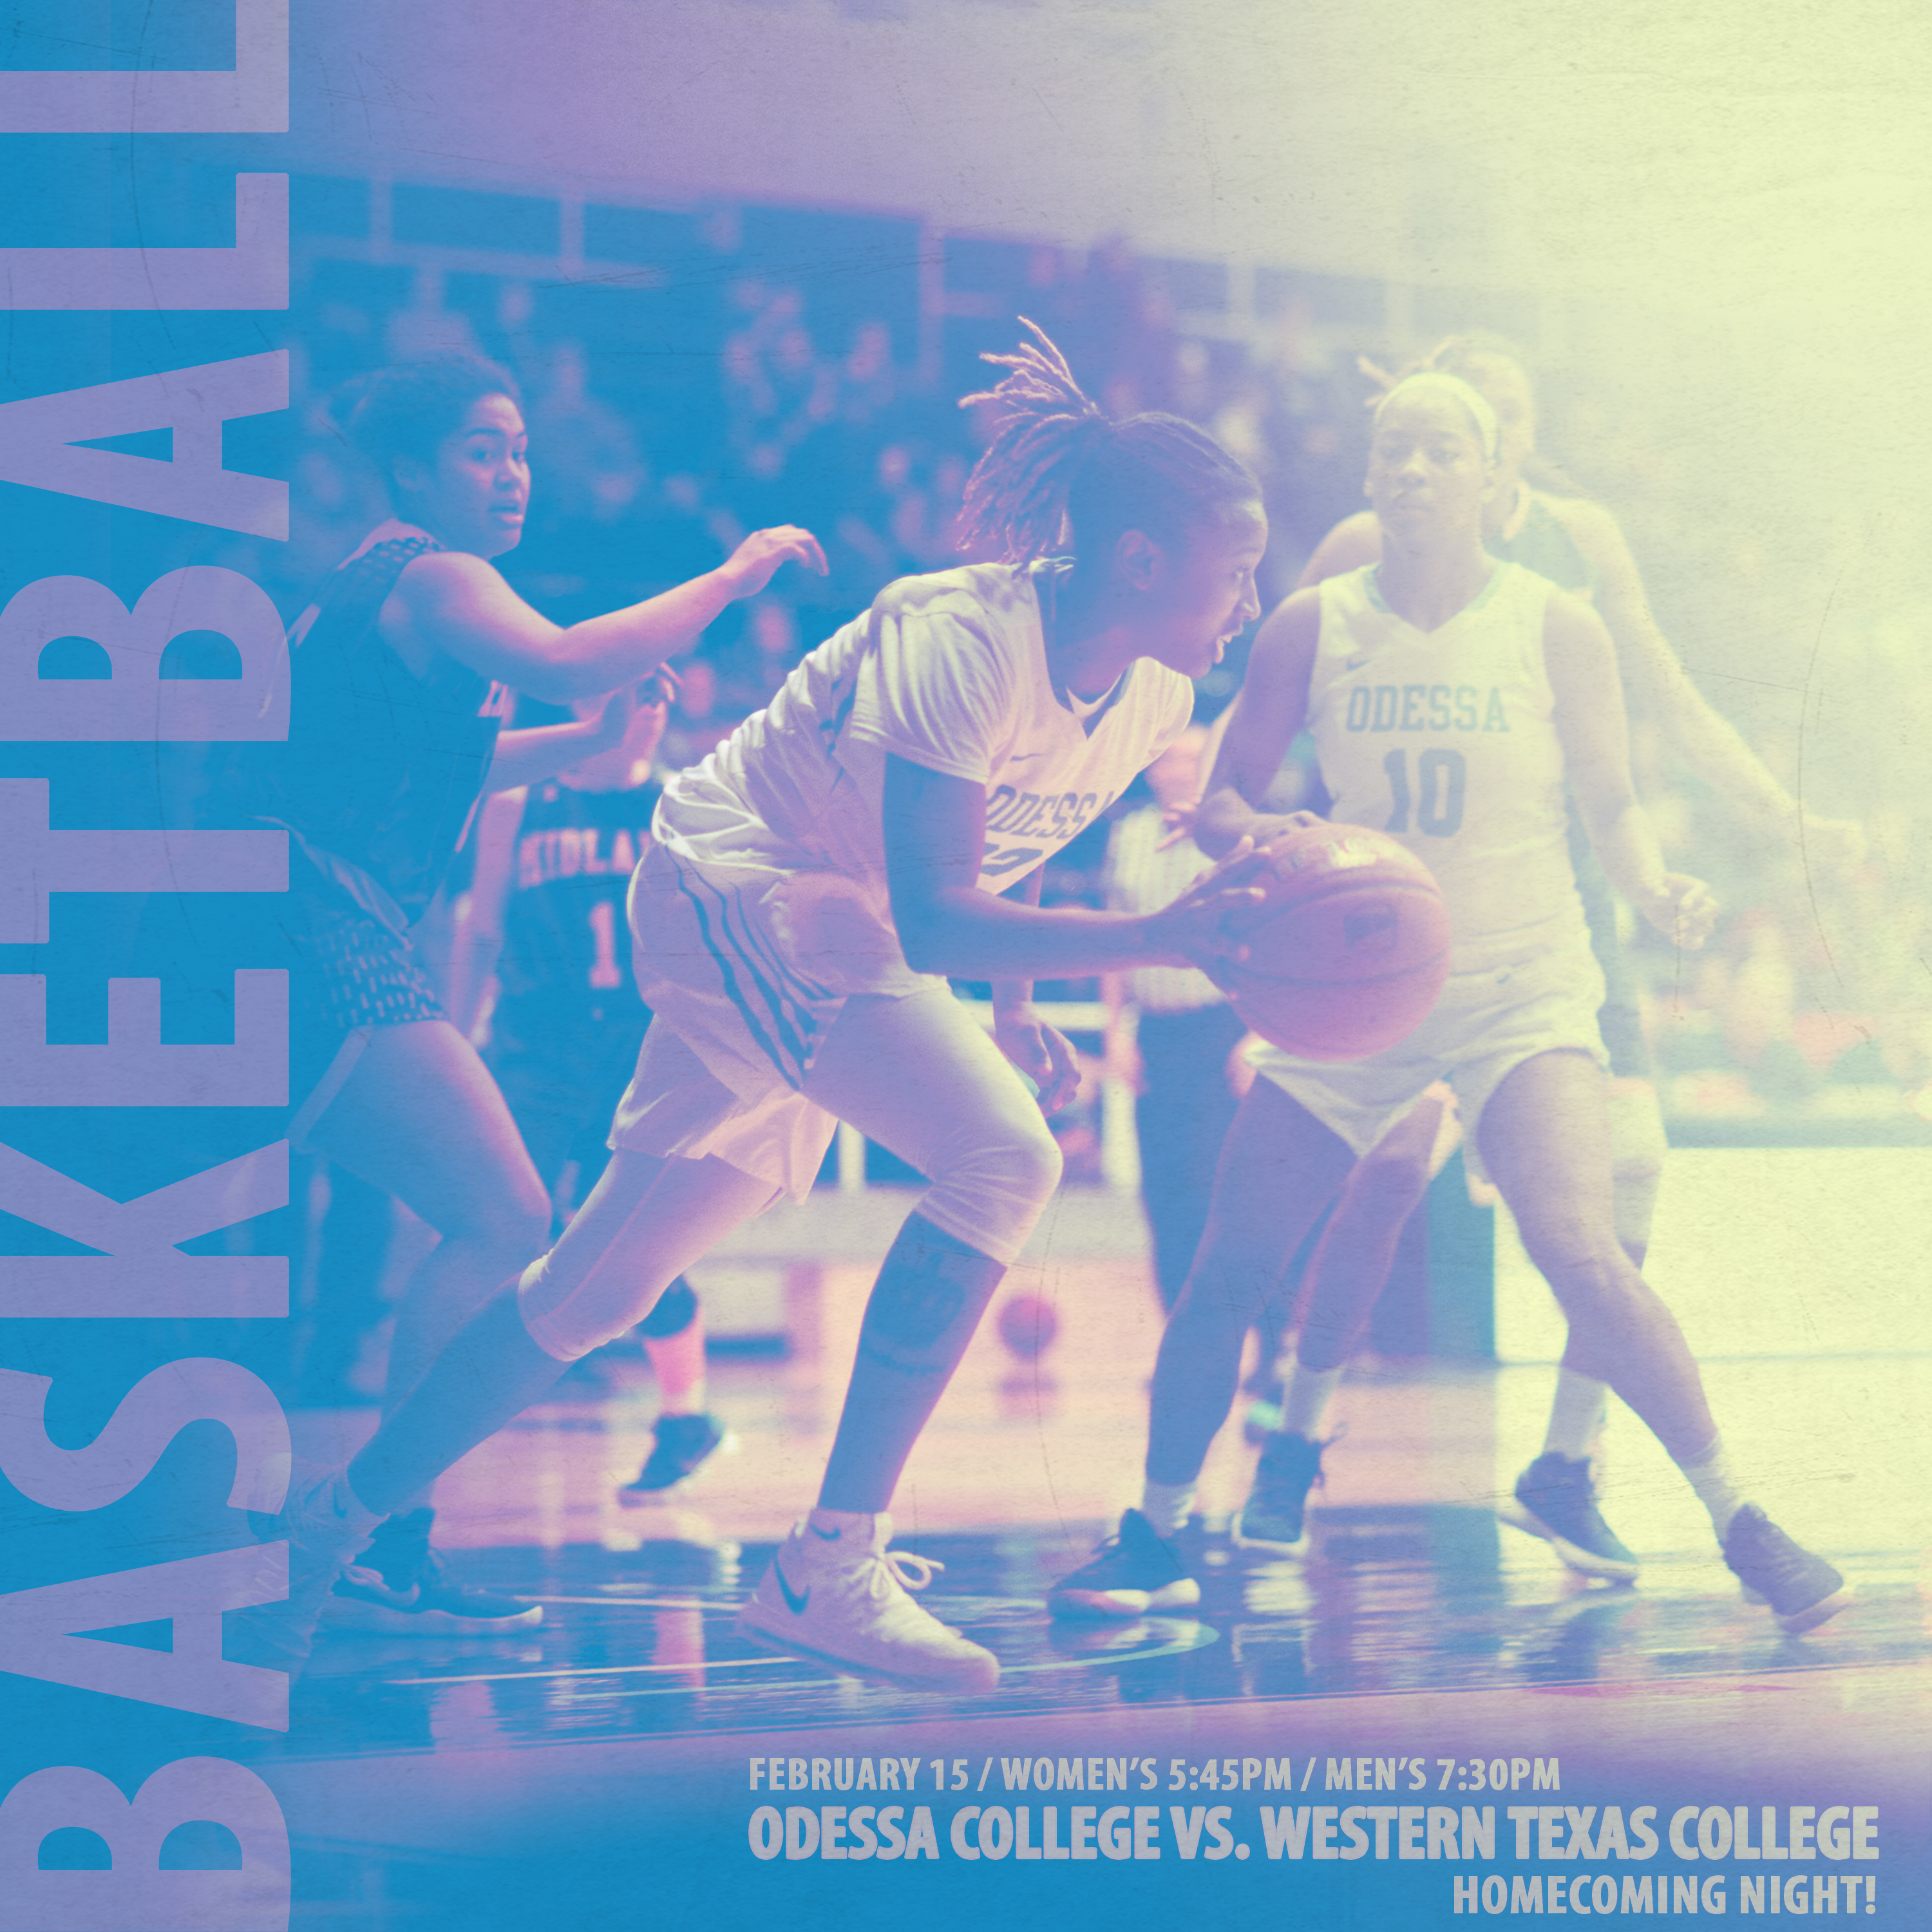 Odessa College vs Western Texas College